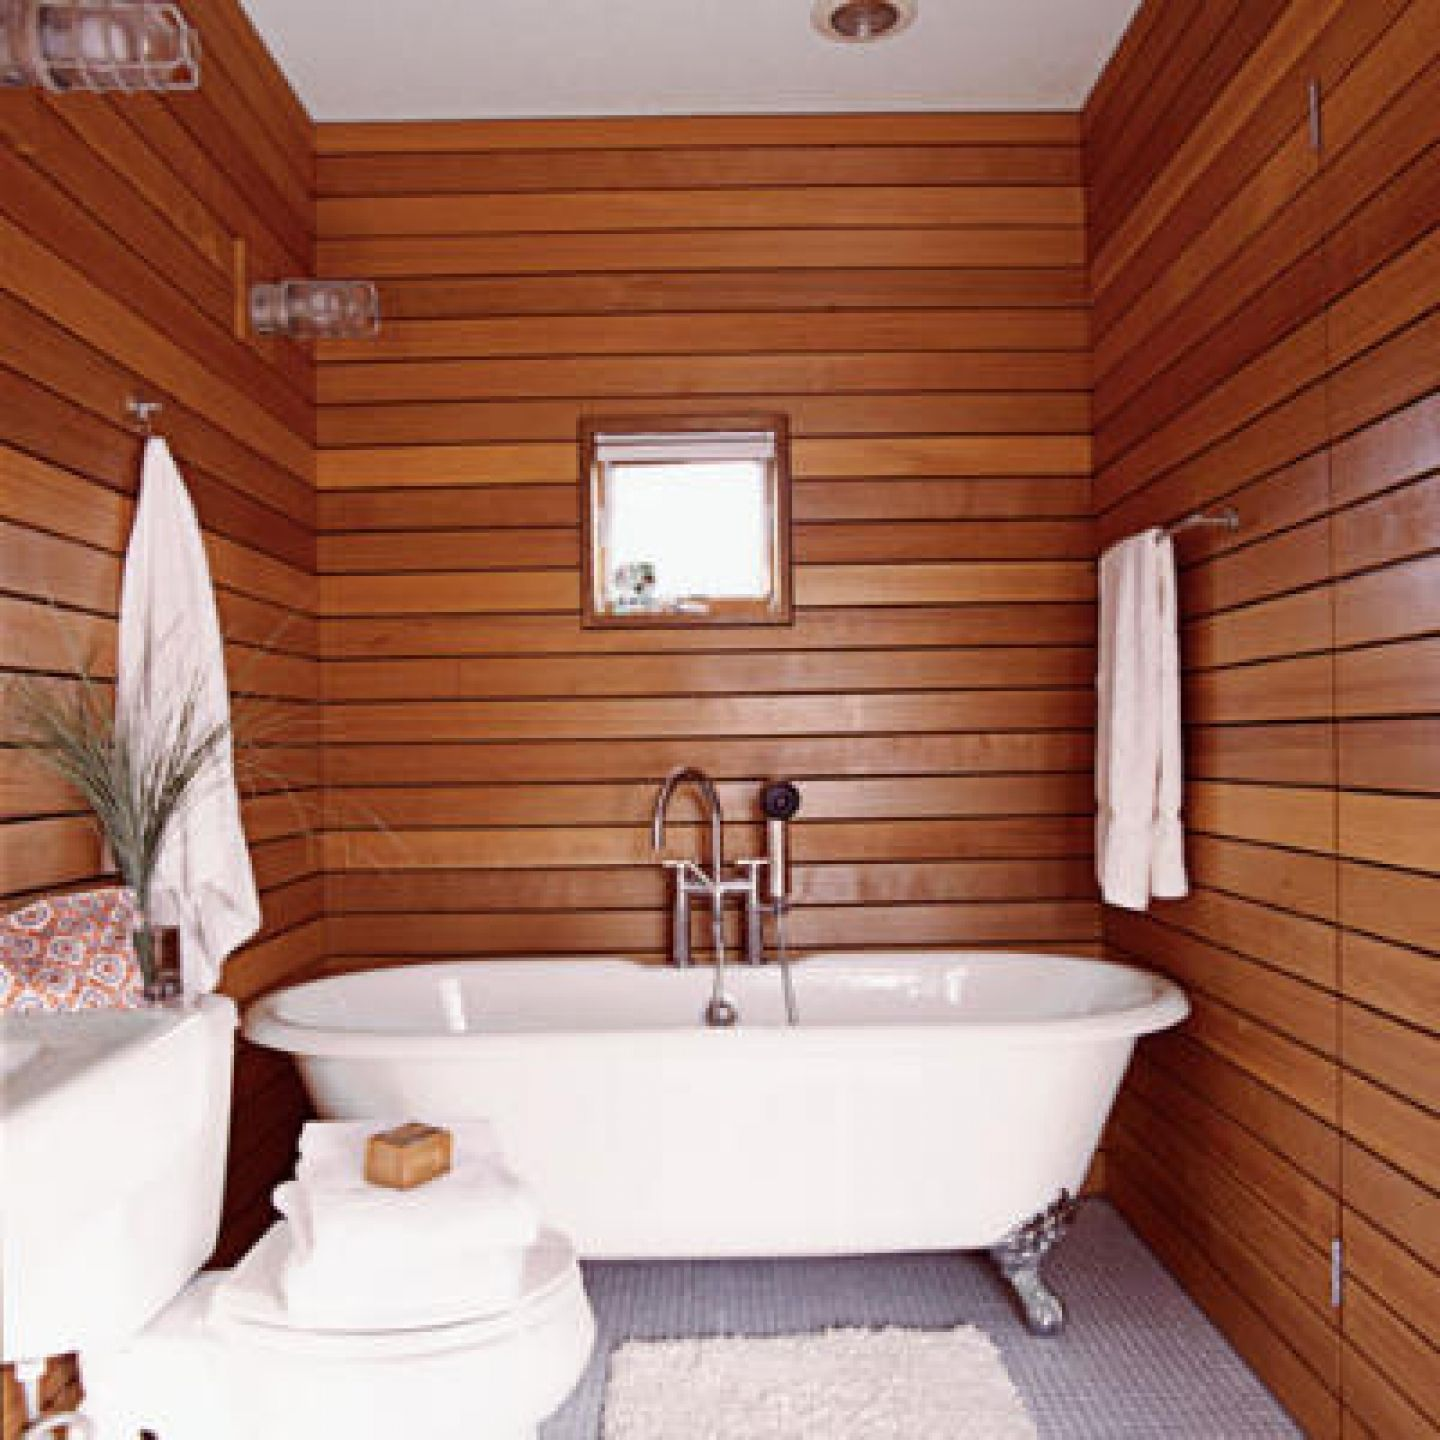 Bathroom Bathtubs For Small Tasty Bathroom Fascinating Wooden Wall - Wall paneling for bathroom for bathroom decor ideas